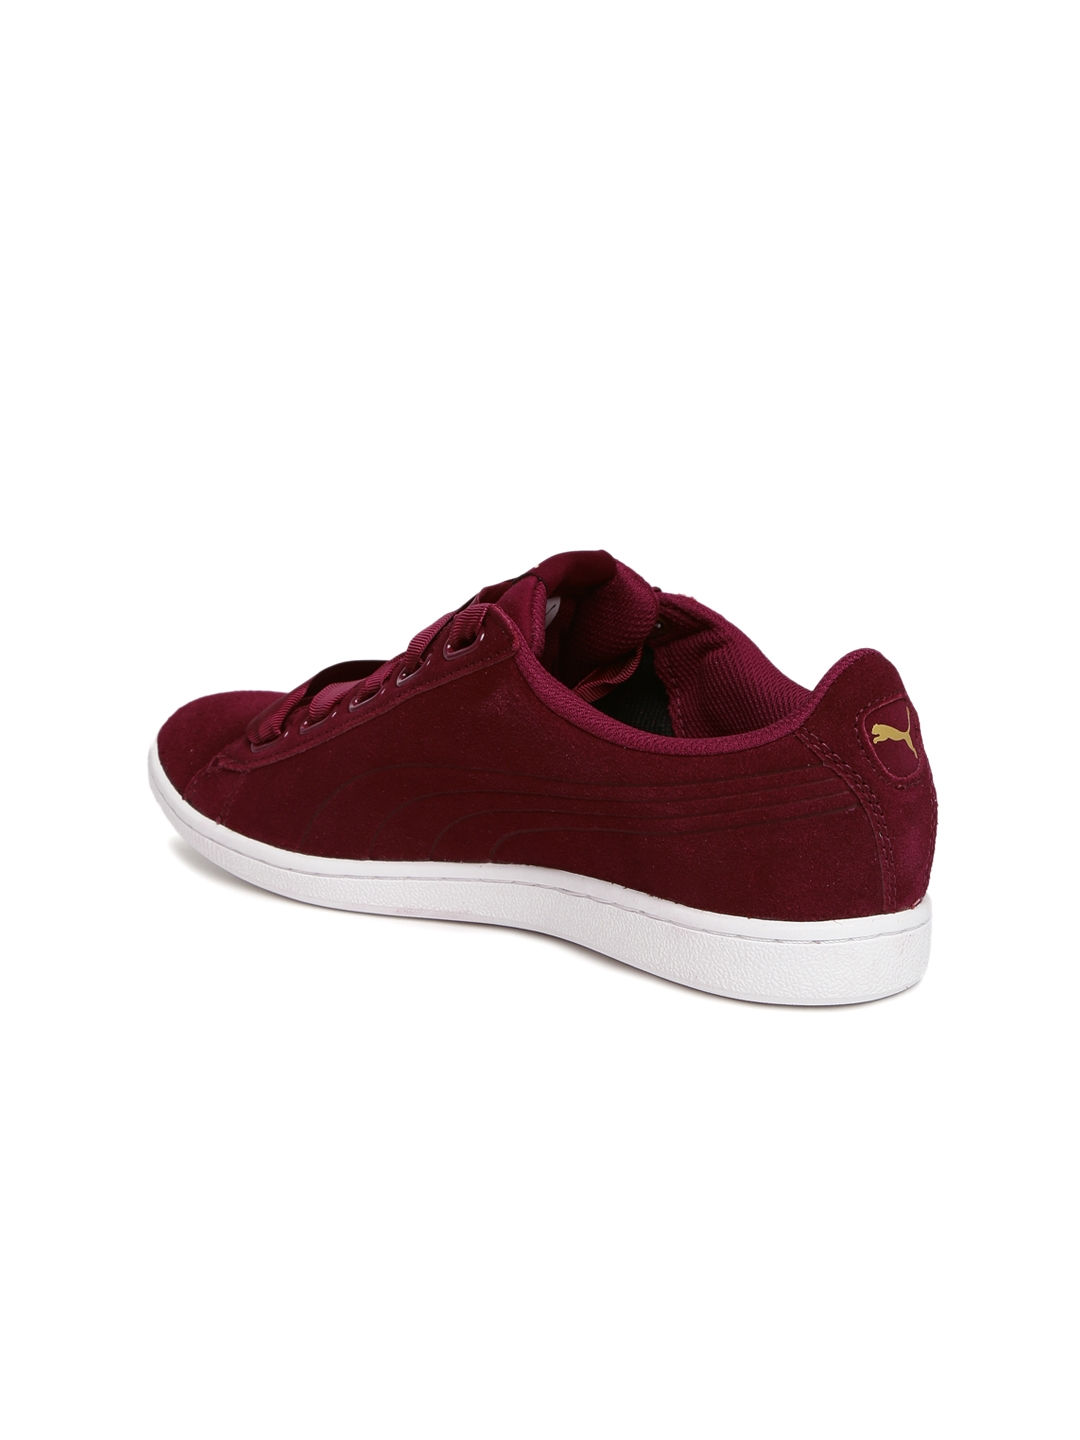 Buy Puma Women Maroon Vikky Ribbon Suede Sneakers - Casual Shoes for ... 38444ed8c